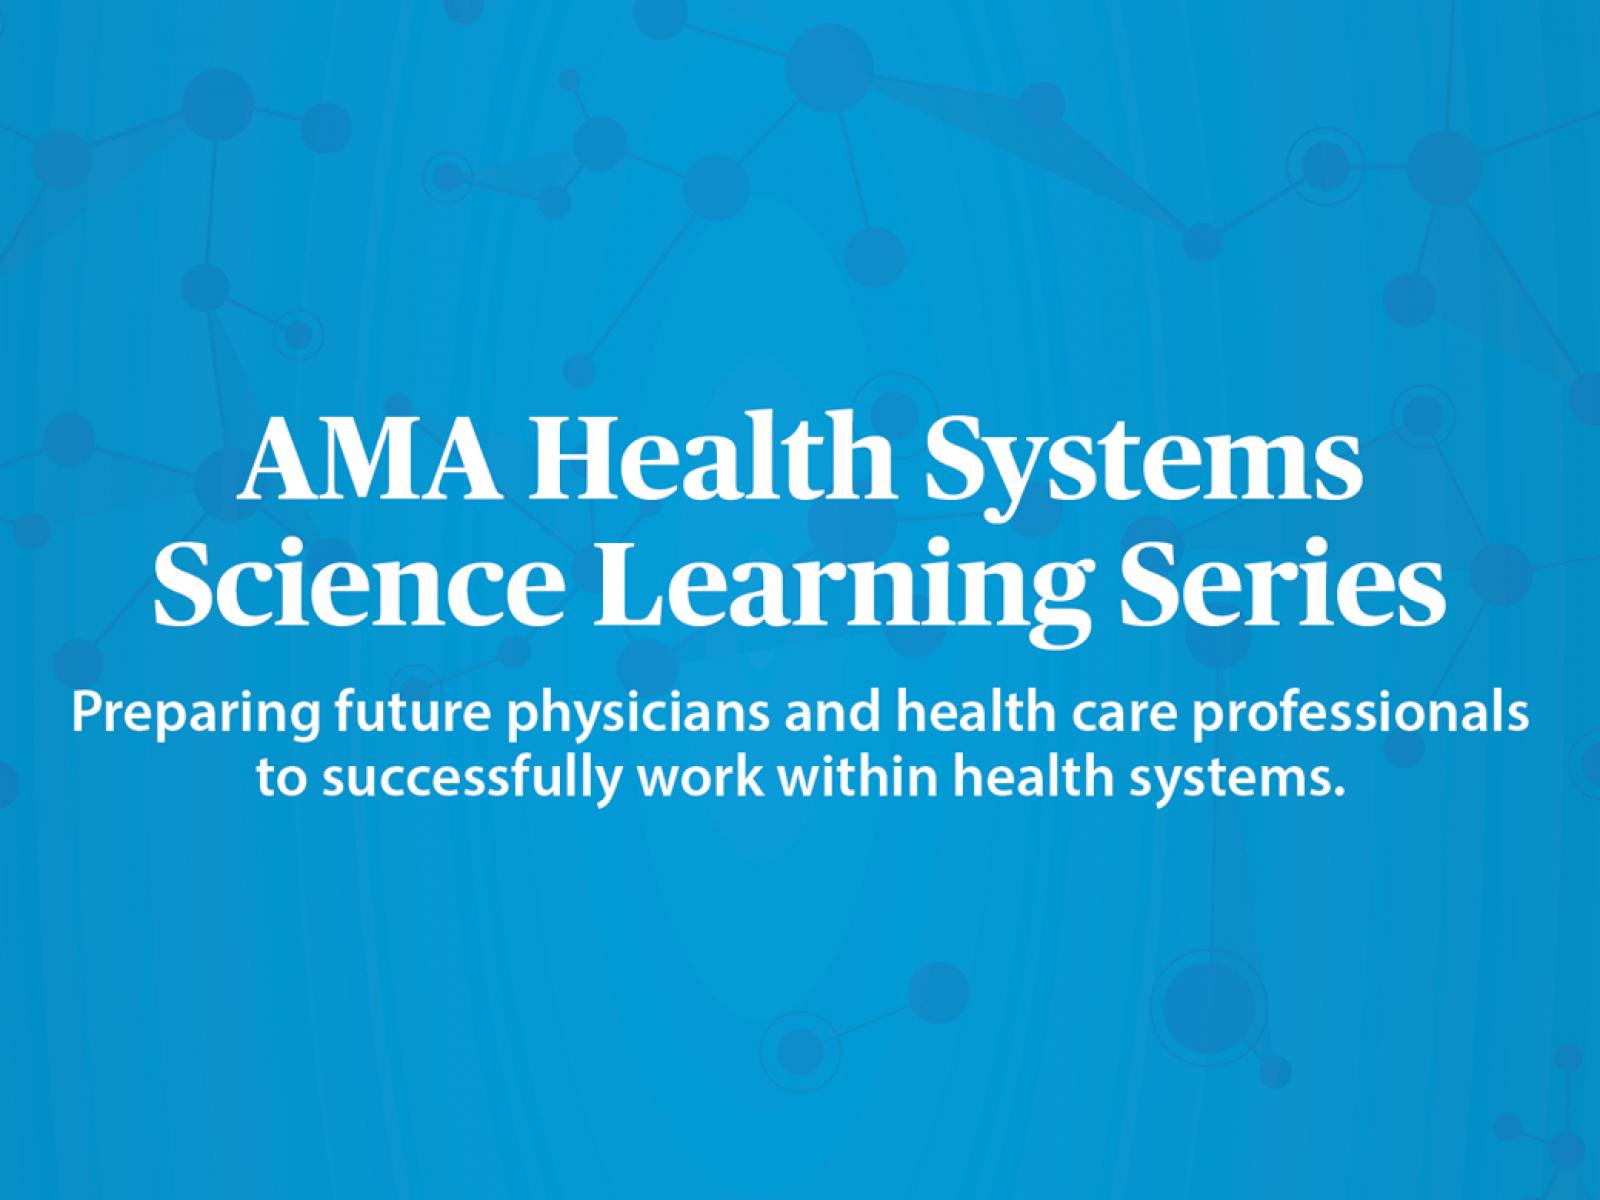 AMA Health Systems Science Learning Series graphic